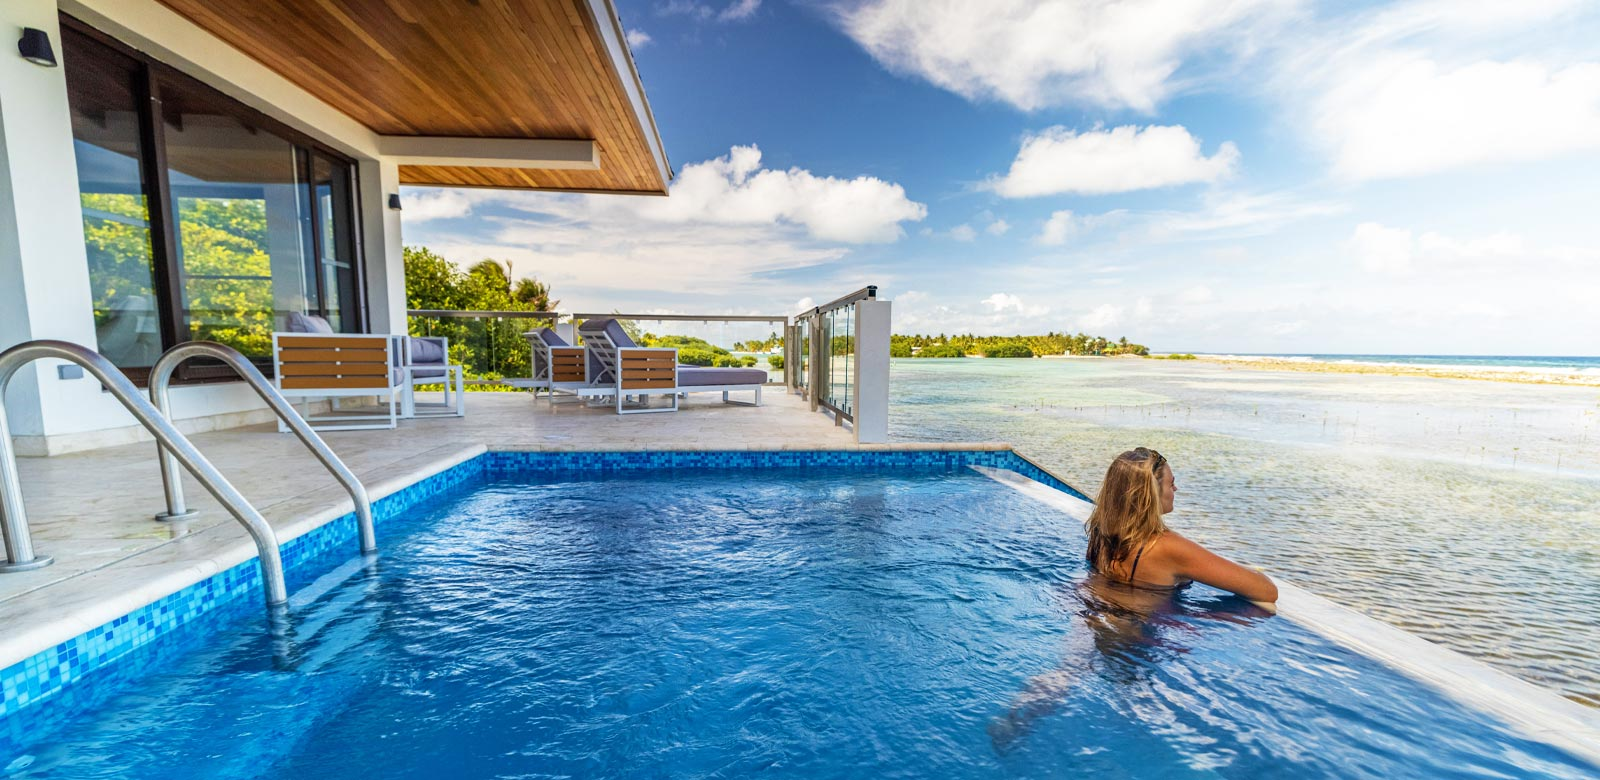 Overwater bungalows in Belize